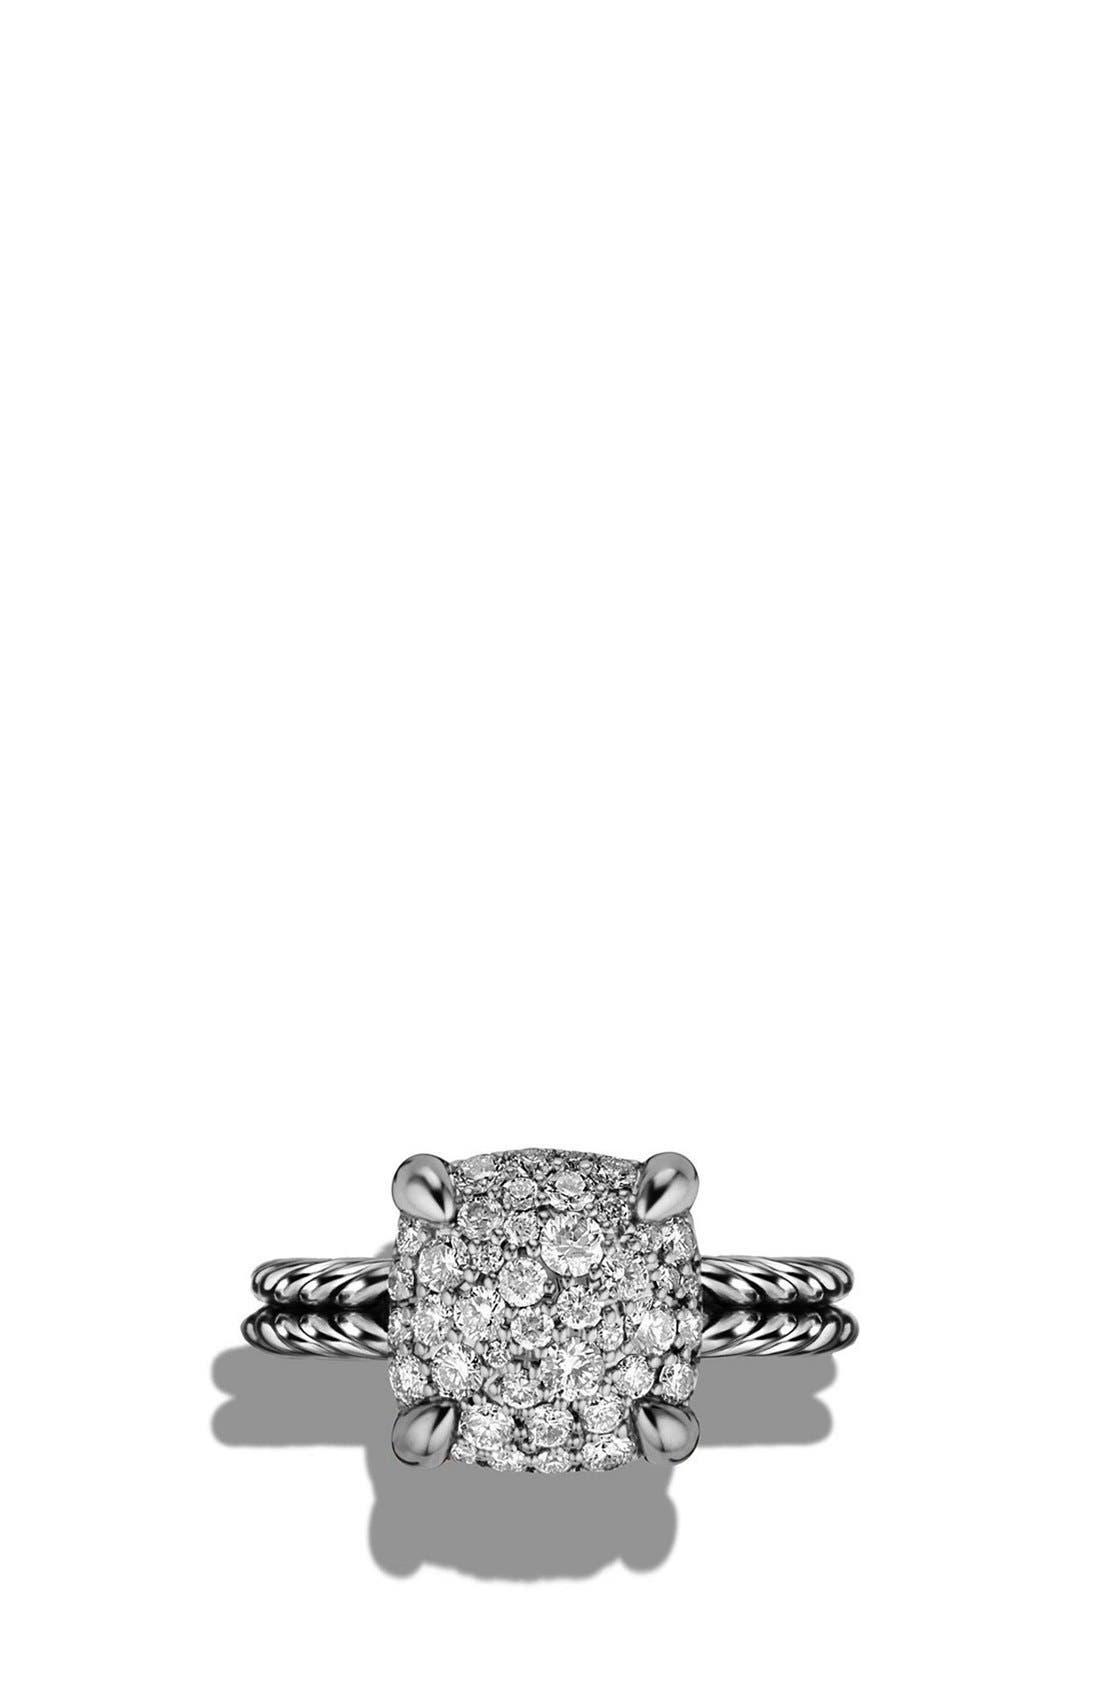 Alternate Image 3  - David Yurman 'Châtelaine' Ring with Diamonds